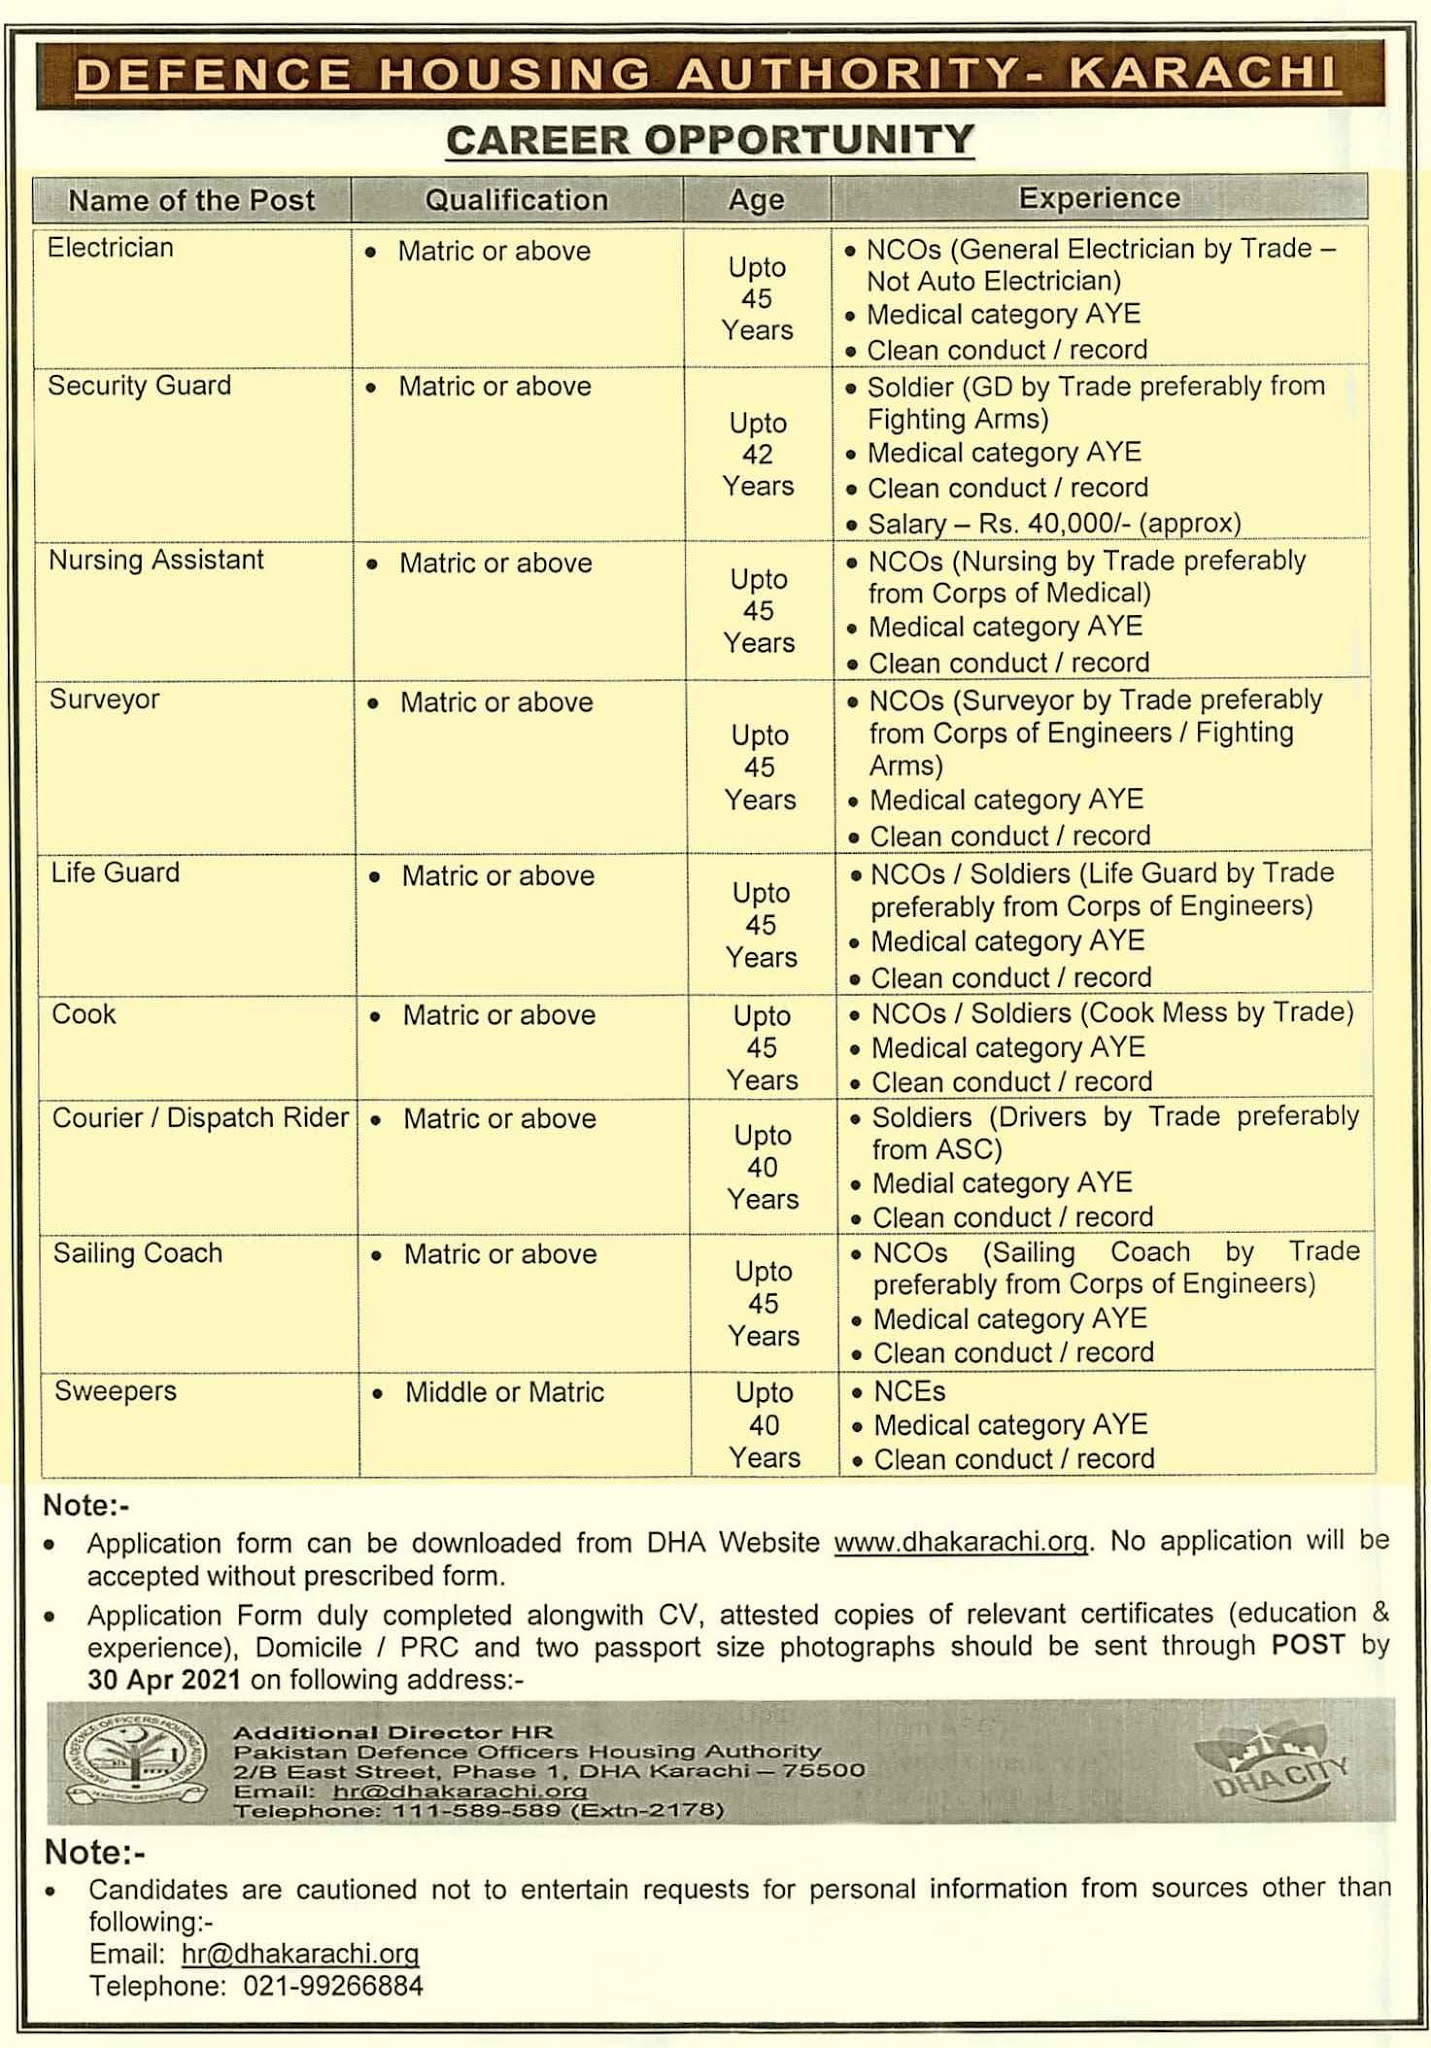 Defence Housing Authority DHA Karachi Jobs 2021 for Field Inspector, Office Superintendent, Office Assistant, Telephone Operator, UDC, DEO, LDC and more